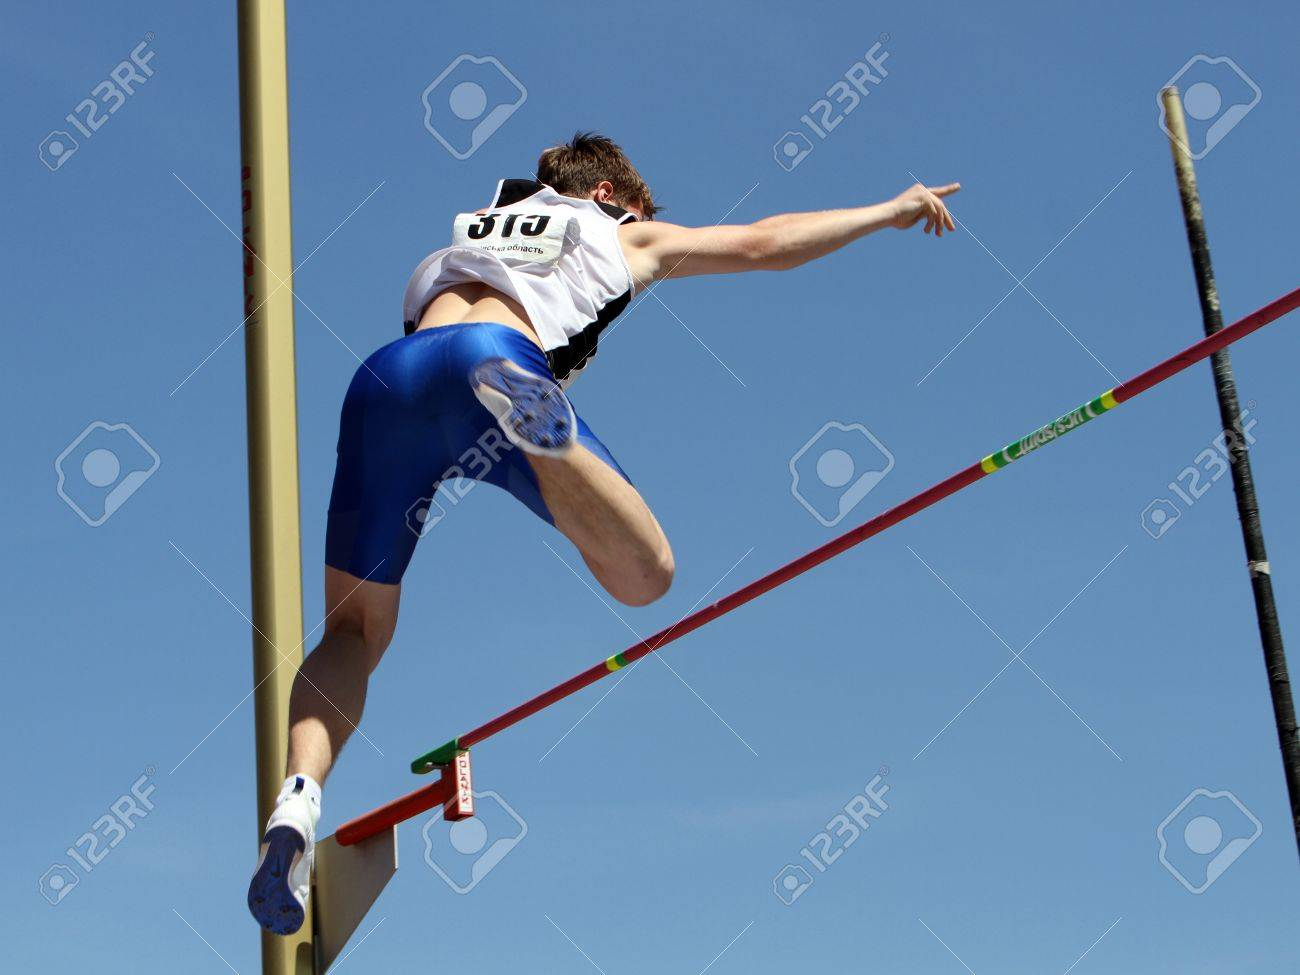 YALTA, UKRAINE - APRIL 25  Kononihin Aleksandr compete in the pole vault competition for boys age 16-17 on Ukrainian Junior Track and Field Championships on april 25, 2012 - Yalta, Ukraine   Stock Photo - 13436642